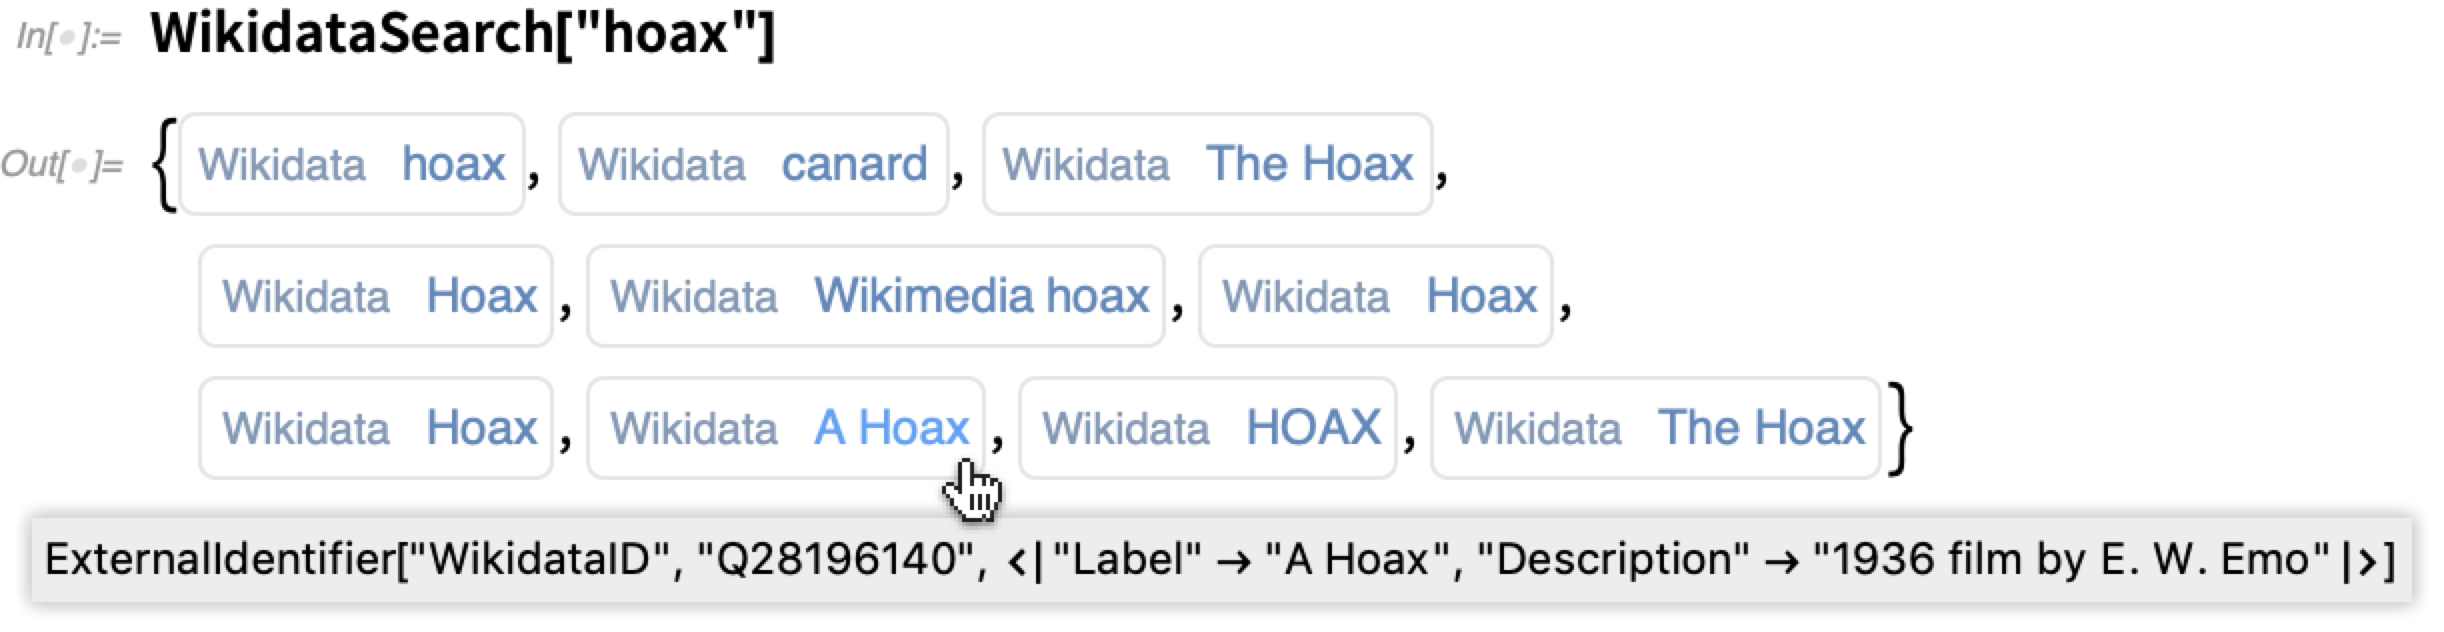 """WikiDataSearch[""""hoax""""]"""